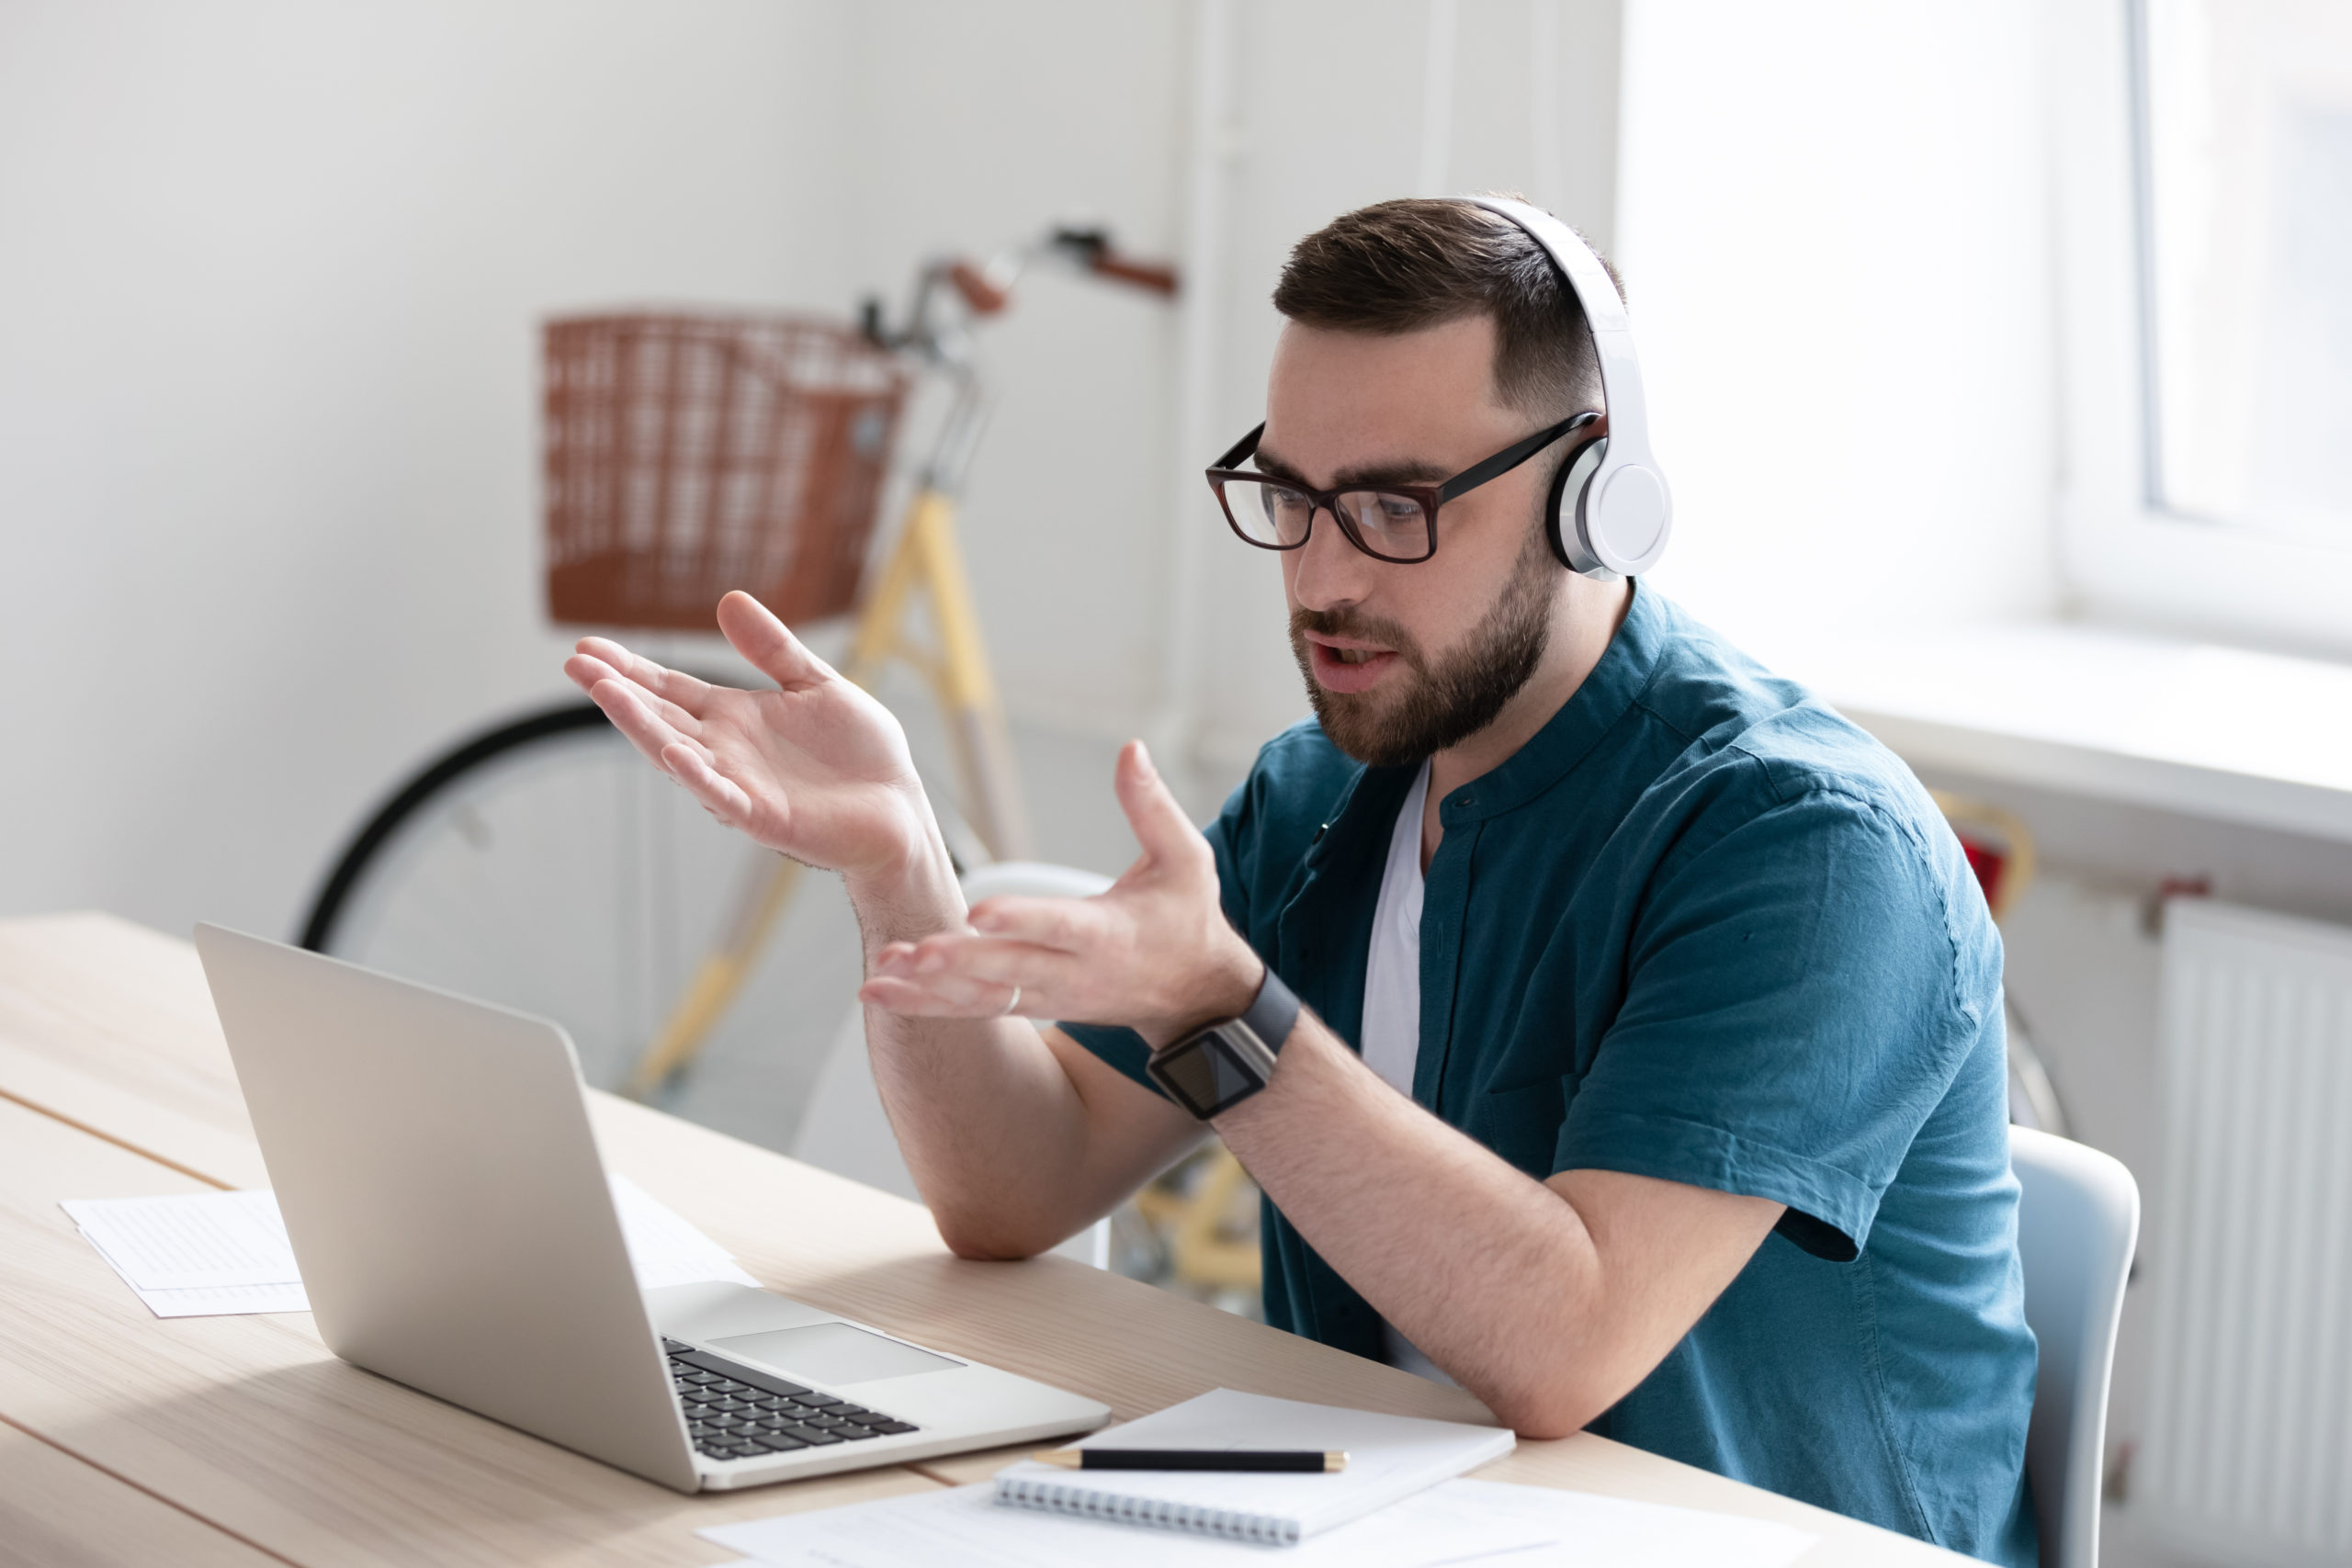 How to ensure your remote team remains successful during COVID-19